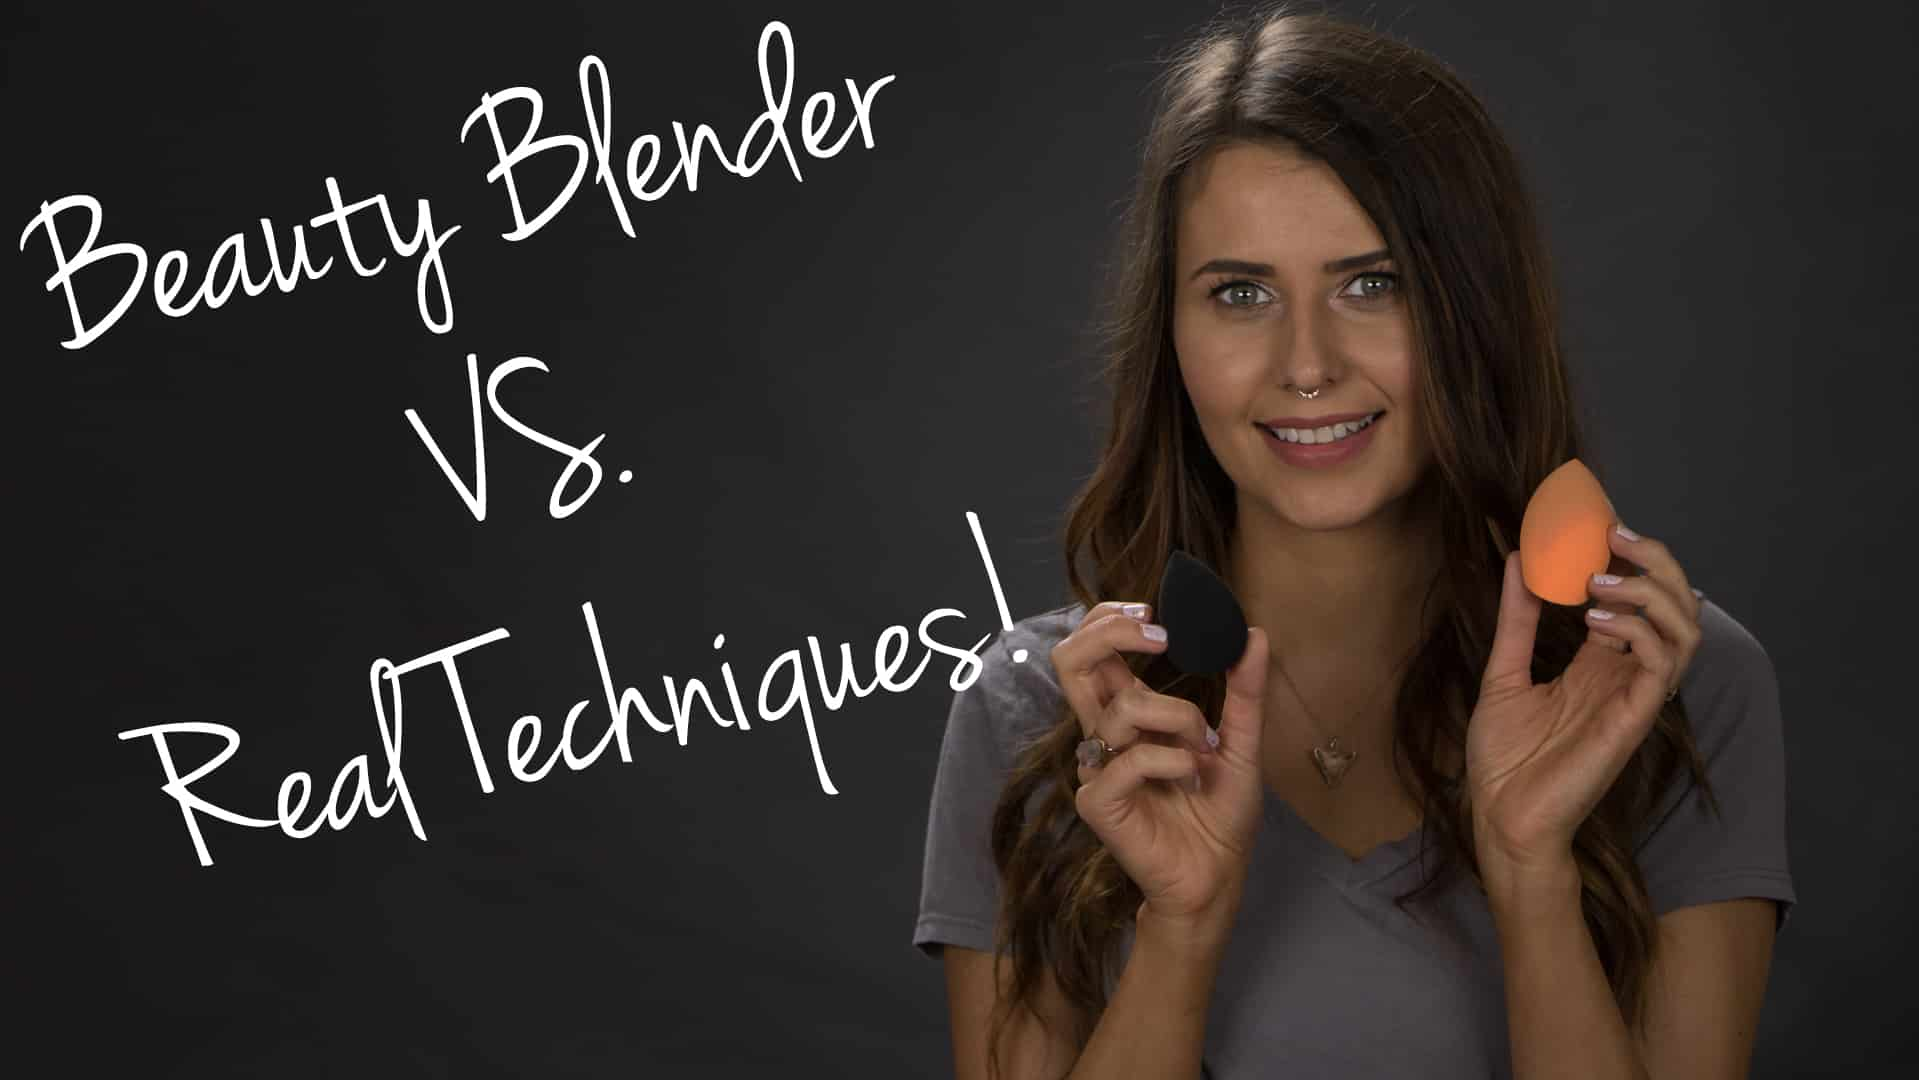 beautyblender & Real Techniques Comparison